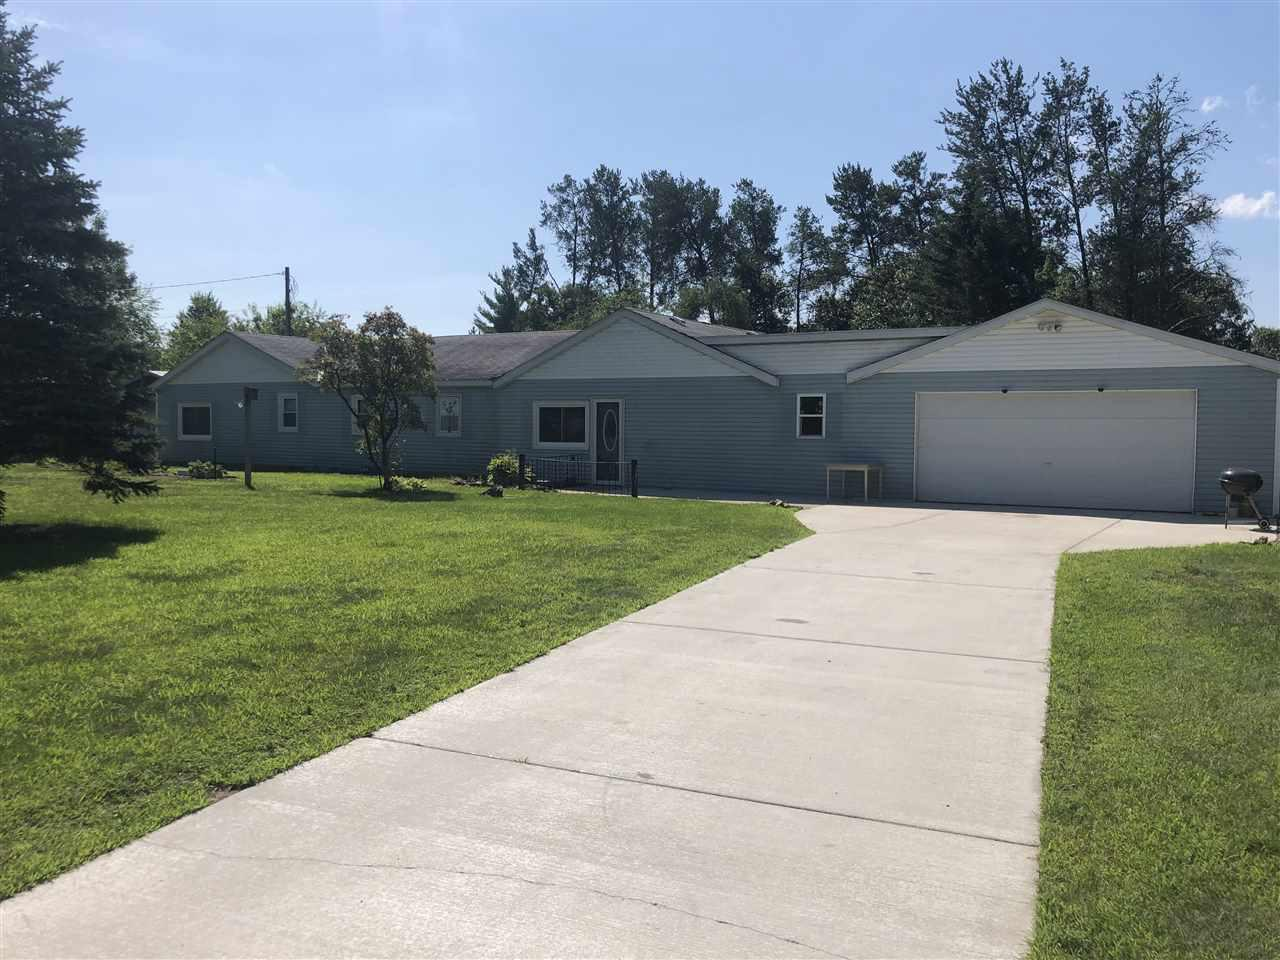 Bring your ideas.........so much potential in this almost 1900 square feet ranch home, with 3 bedrooms and 1 full bath. Great yard and space for entertaining. Also has a huge 40x15 workshop